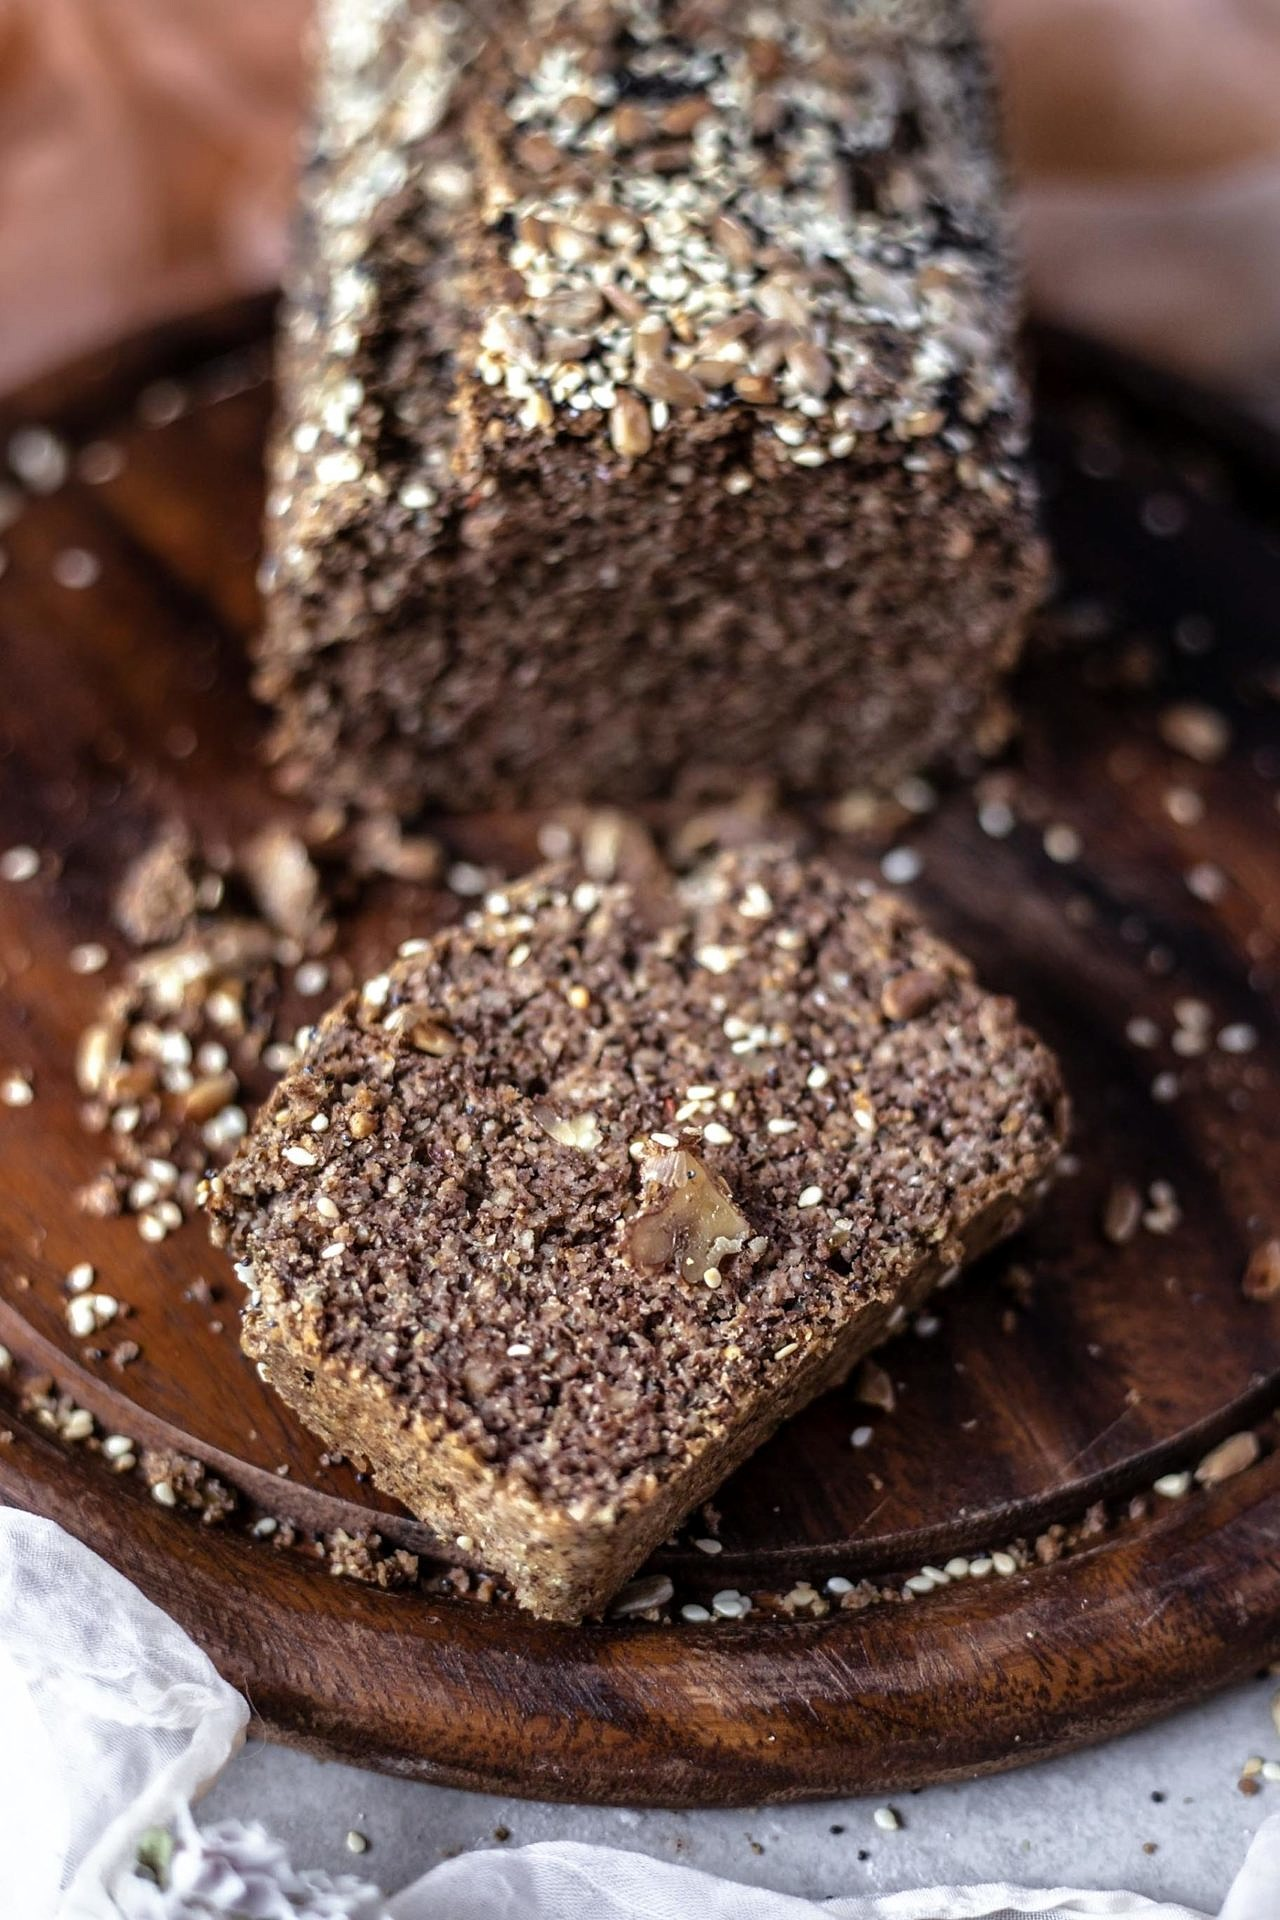 This gluten-free superfood bread is rich, wholesome, nutty, flavorful with a wonderfully soft texture. It's perfect for breakfast or mid-day snack.